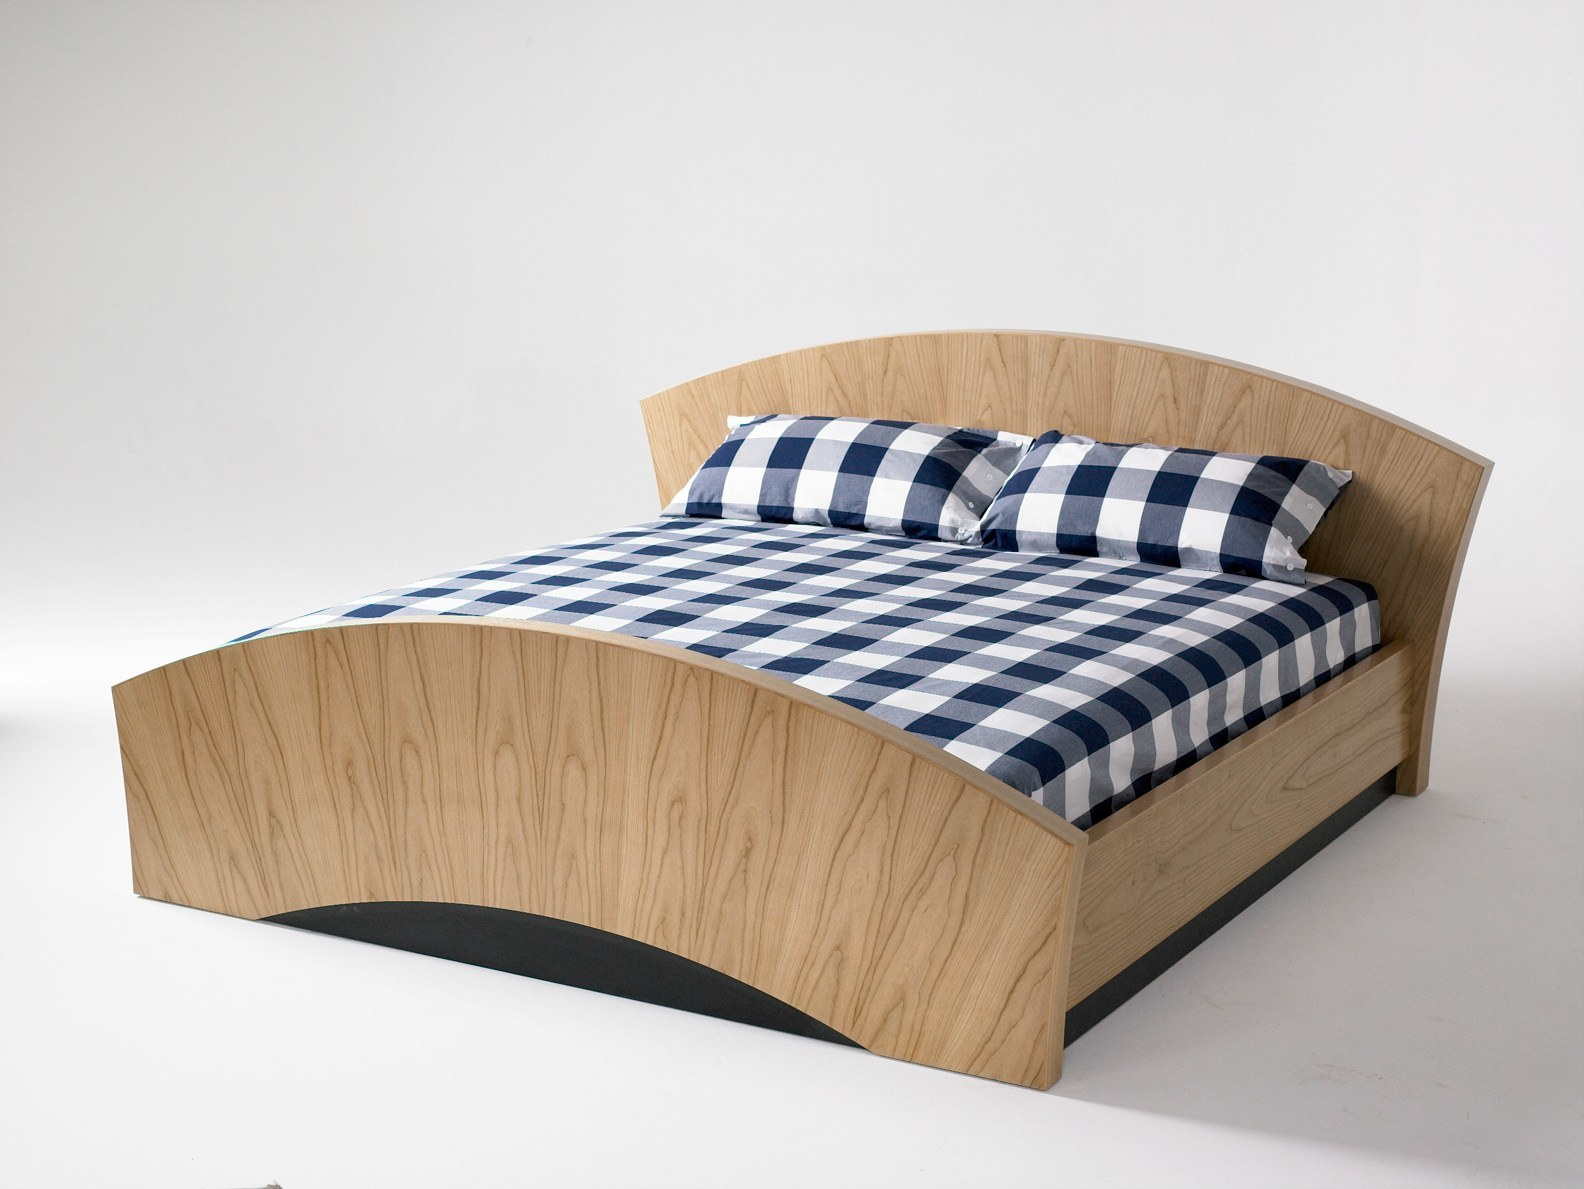 Solid Wood Bed China Solid Wood Bed China Solid Wood Bed Wooden Bed